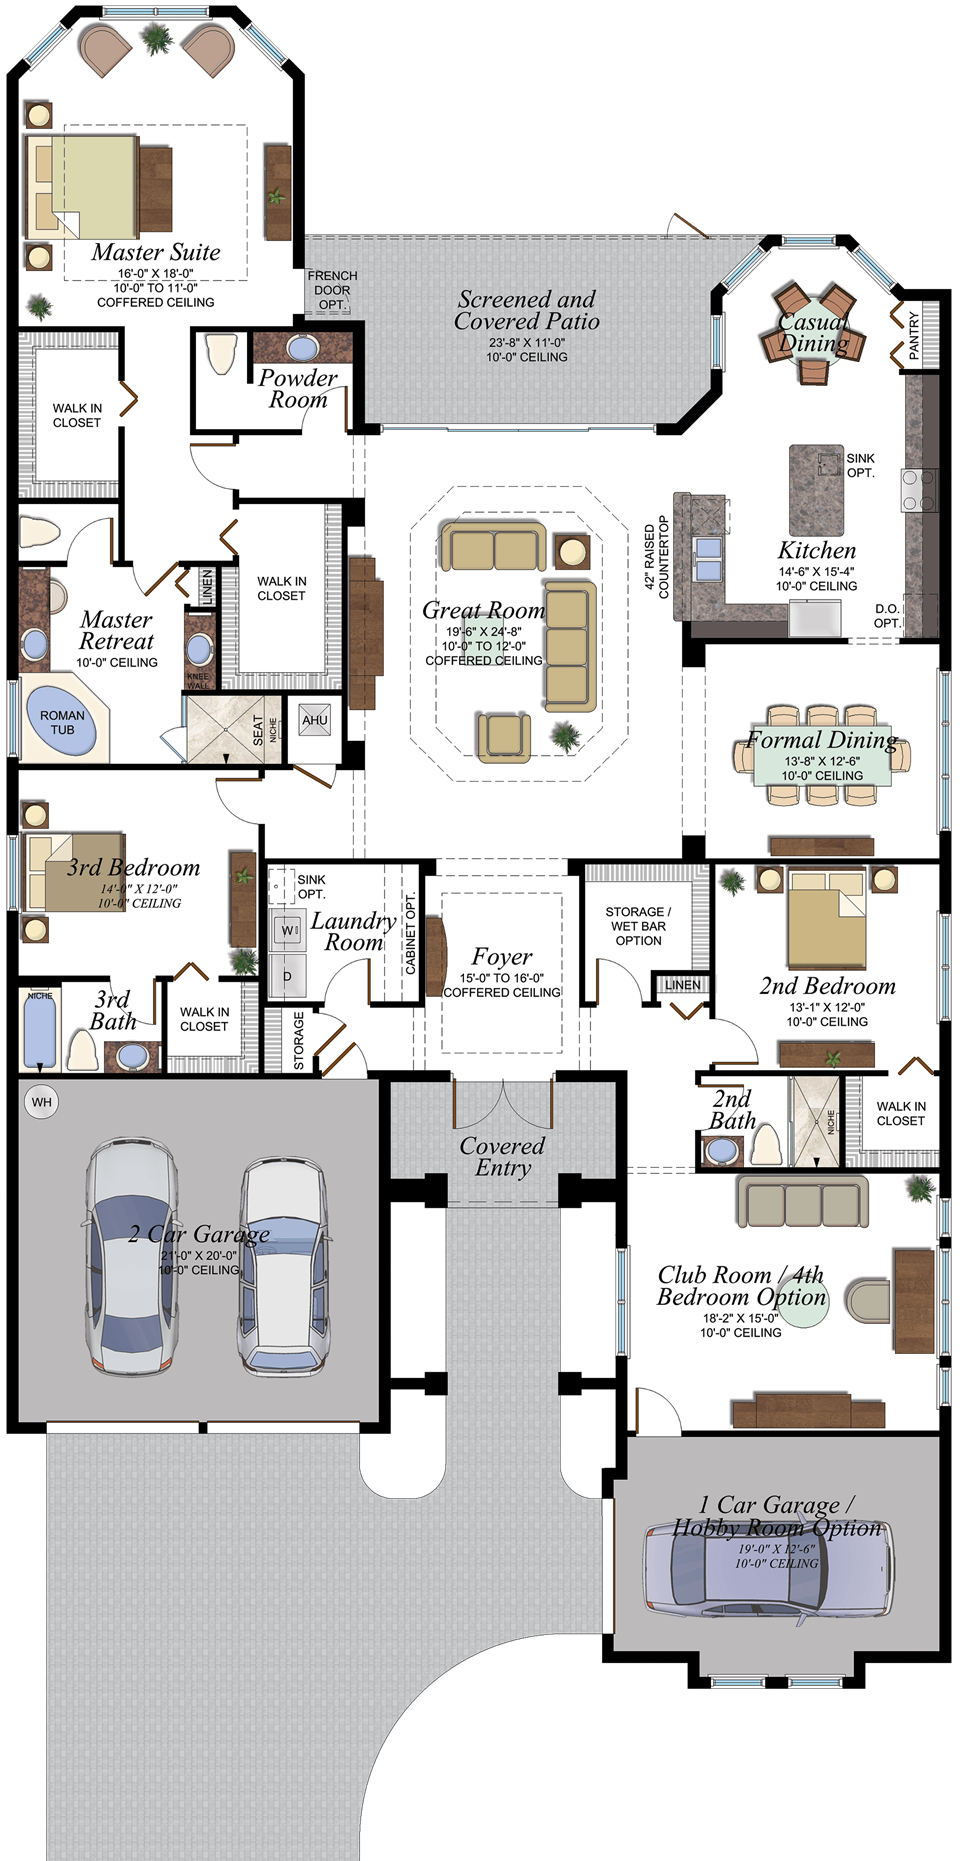 The Carlyle Plan In The Royal Collection At Valencia Lakes In Tampa Florida Florida Real Estate Gl Home House Blueprints Modern House Plans New House Plans